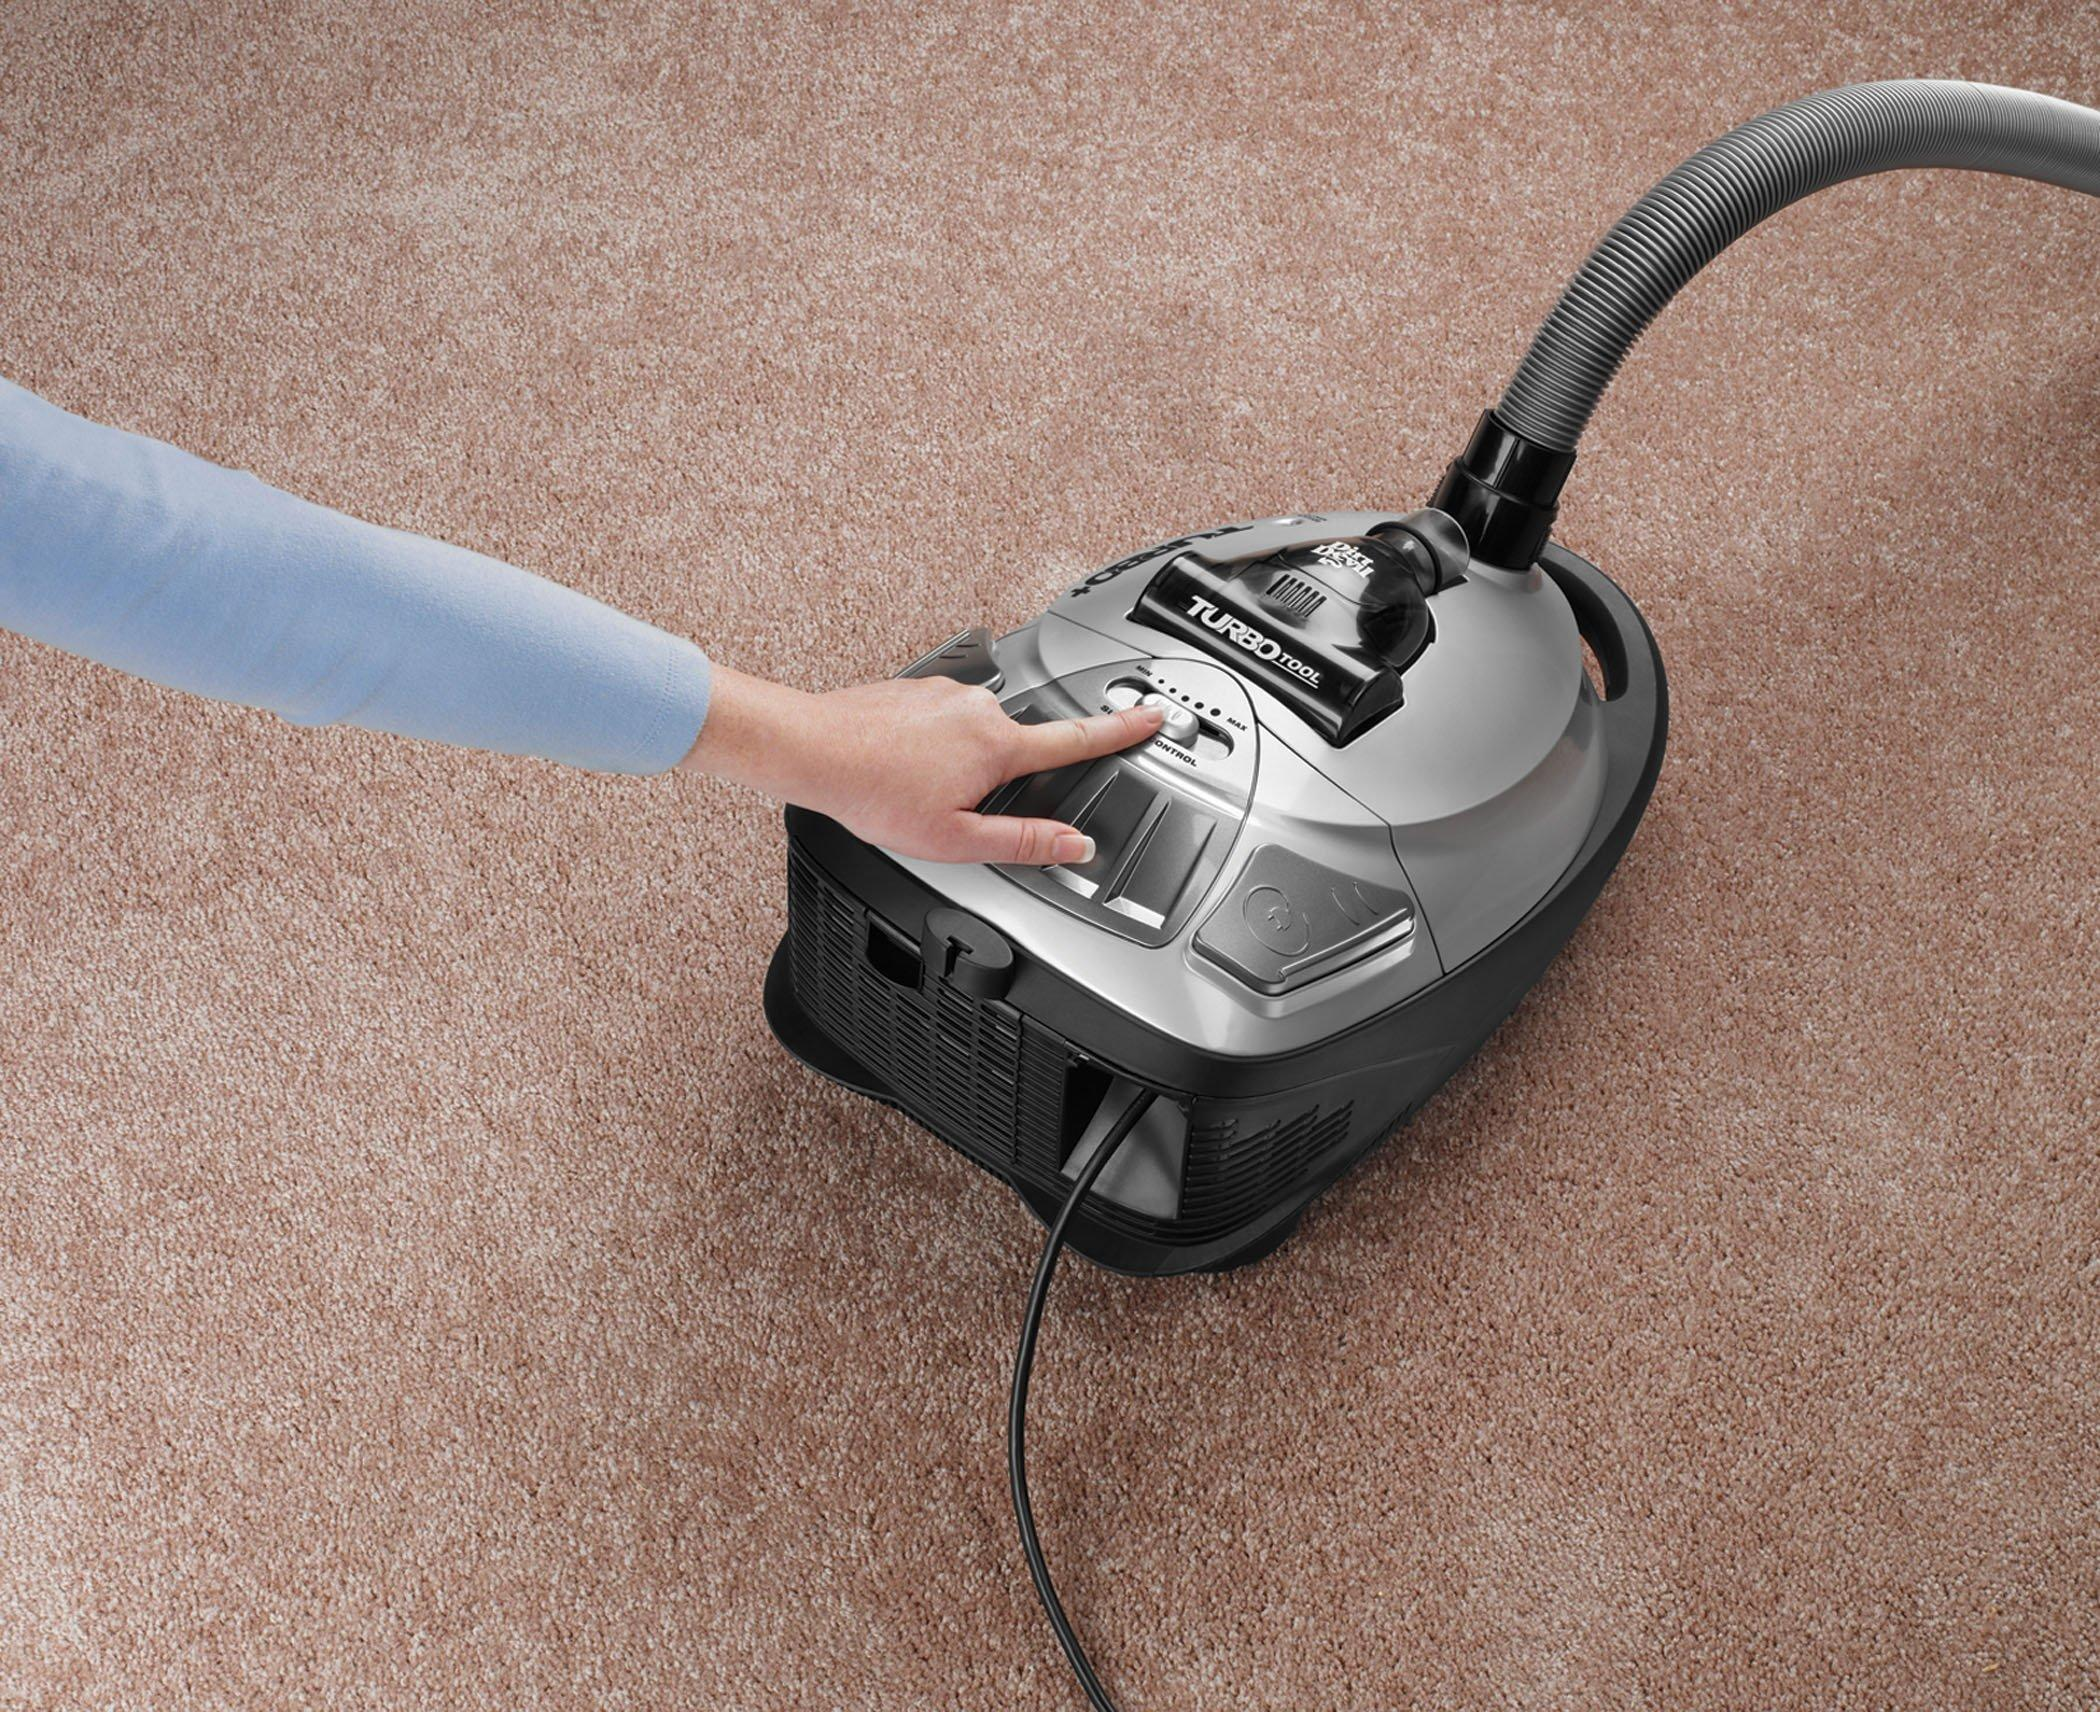 Turbo Plus Bagged Canister Vacuum3